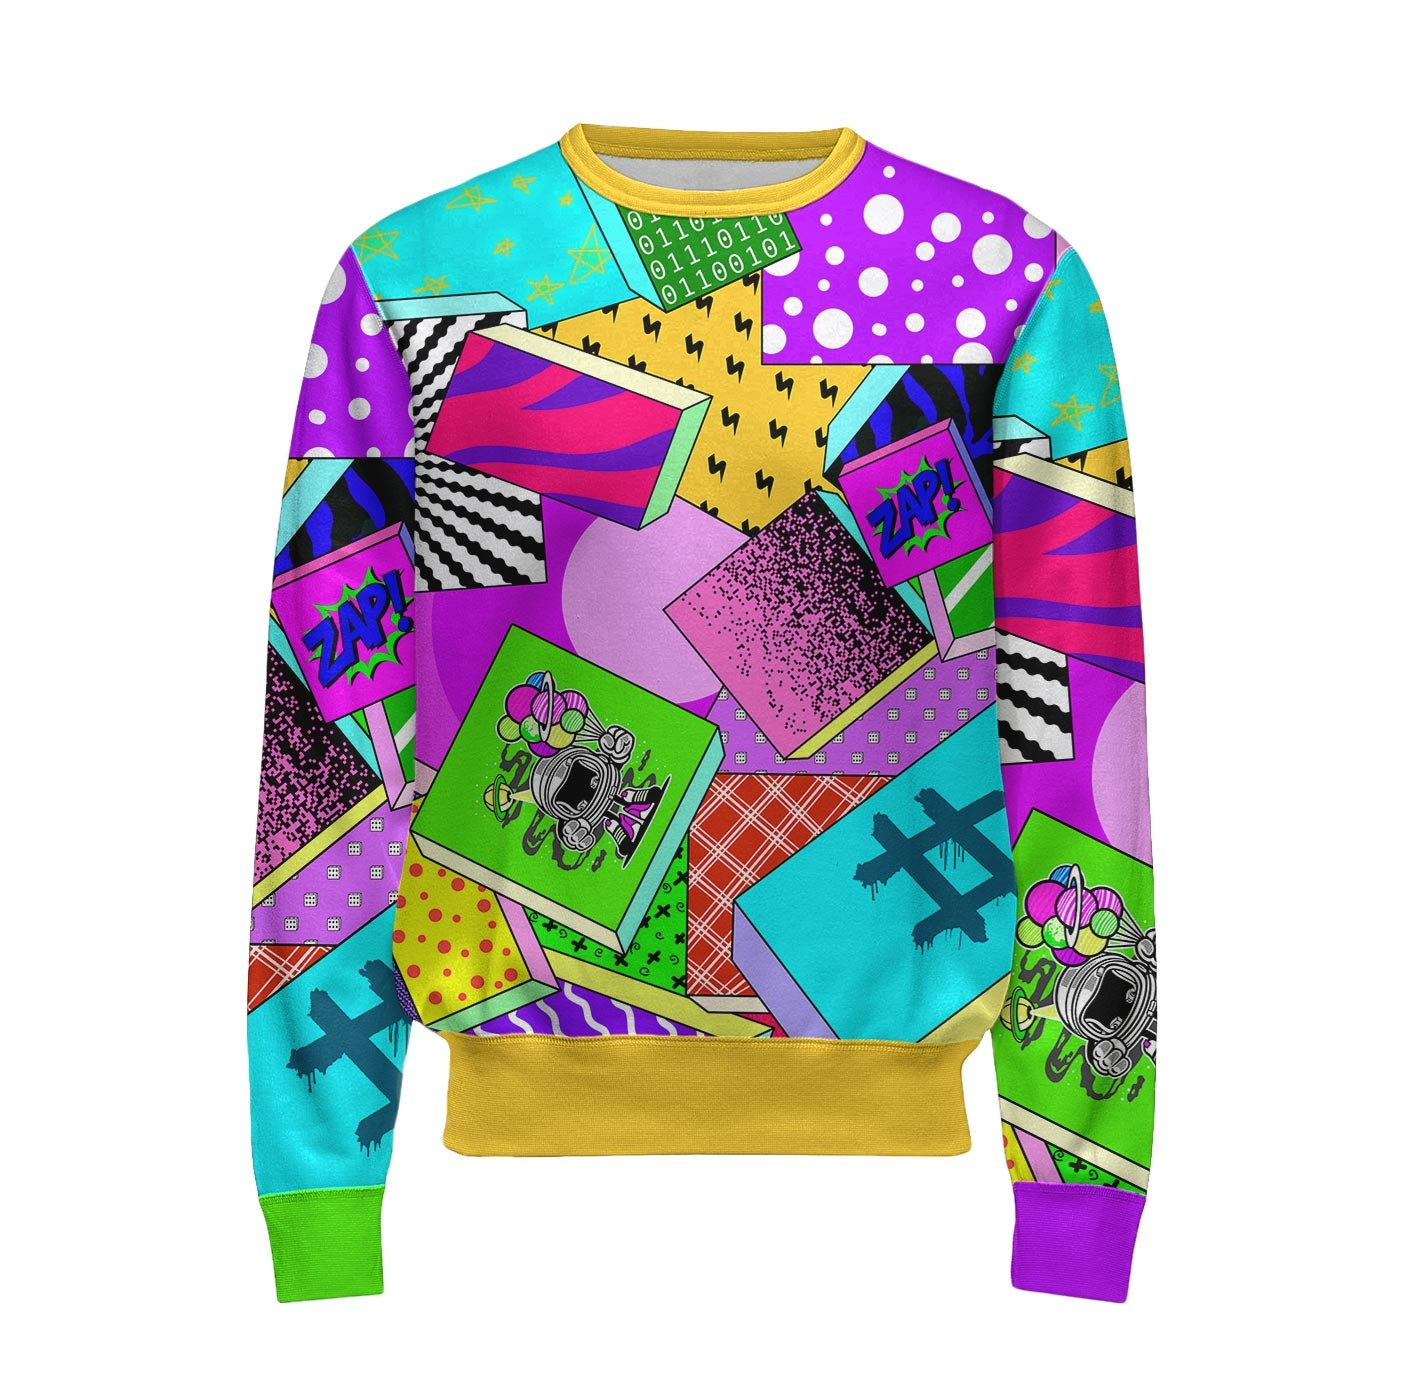 Zap Attack Sweatshirt